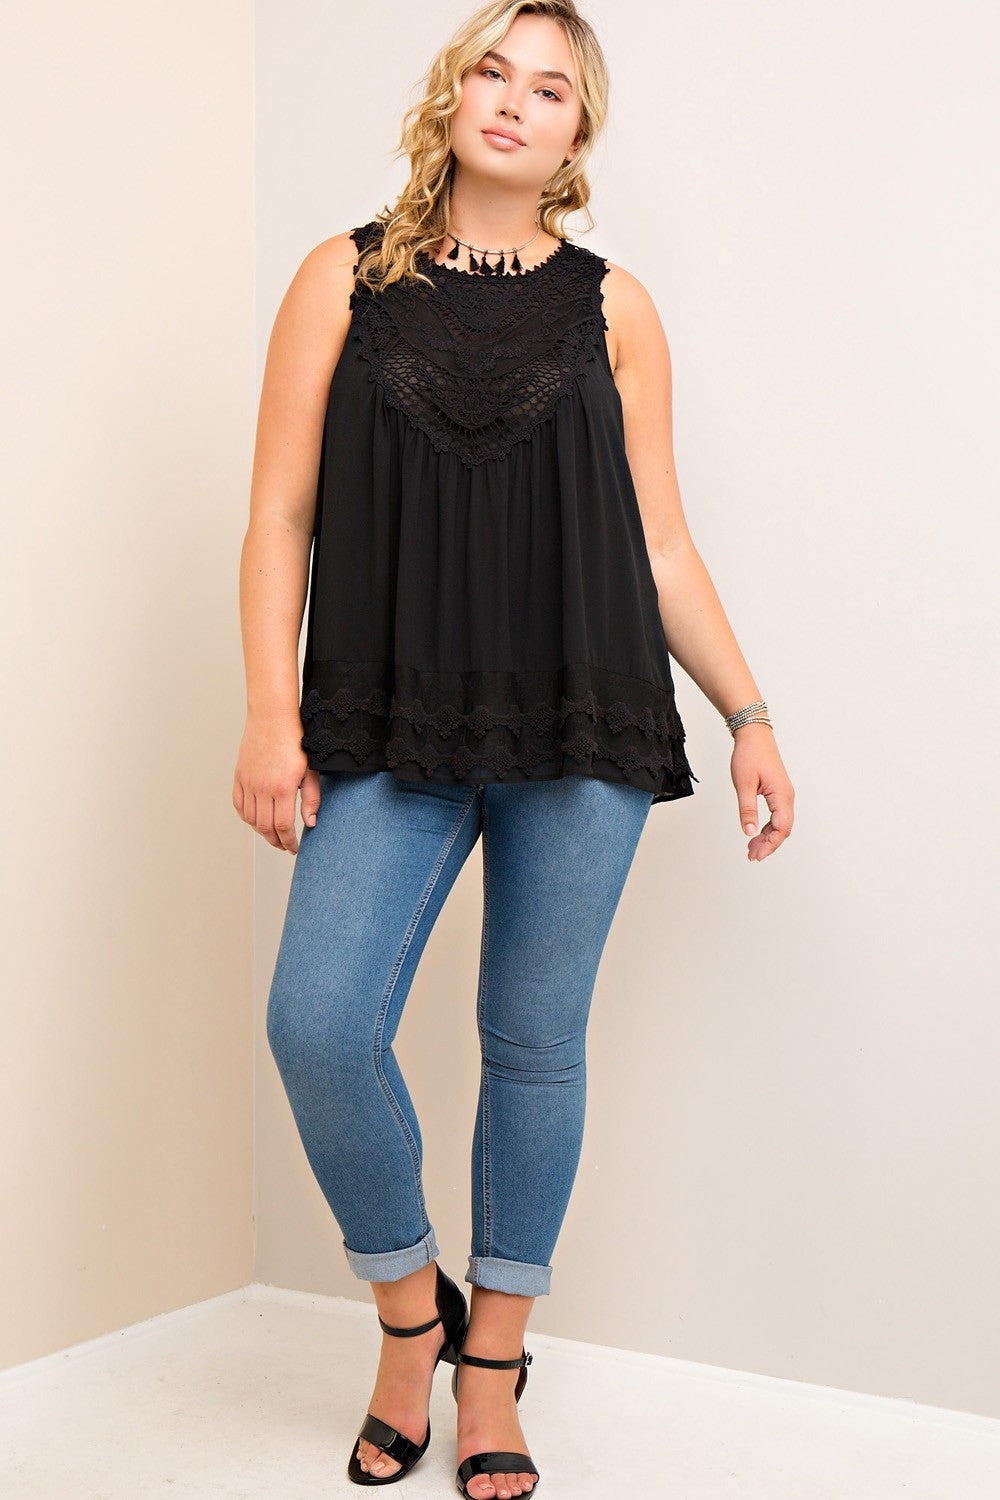 Full front view young plus size woman wearing black colored sleeveless crochet trim top